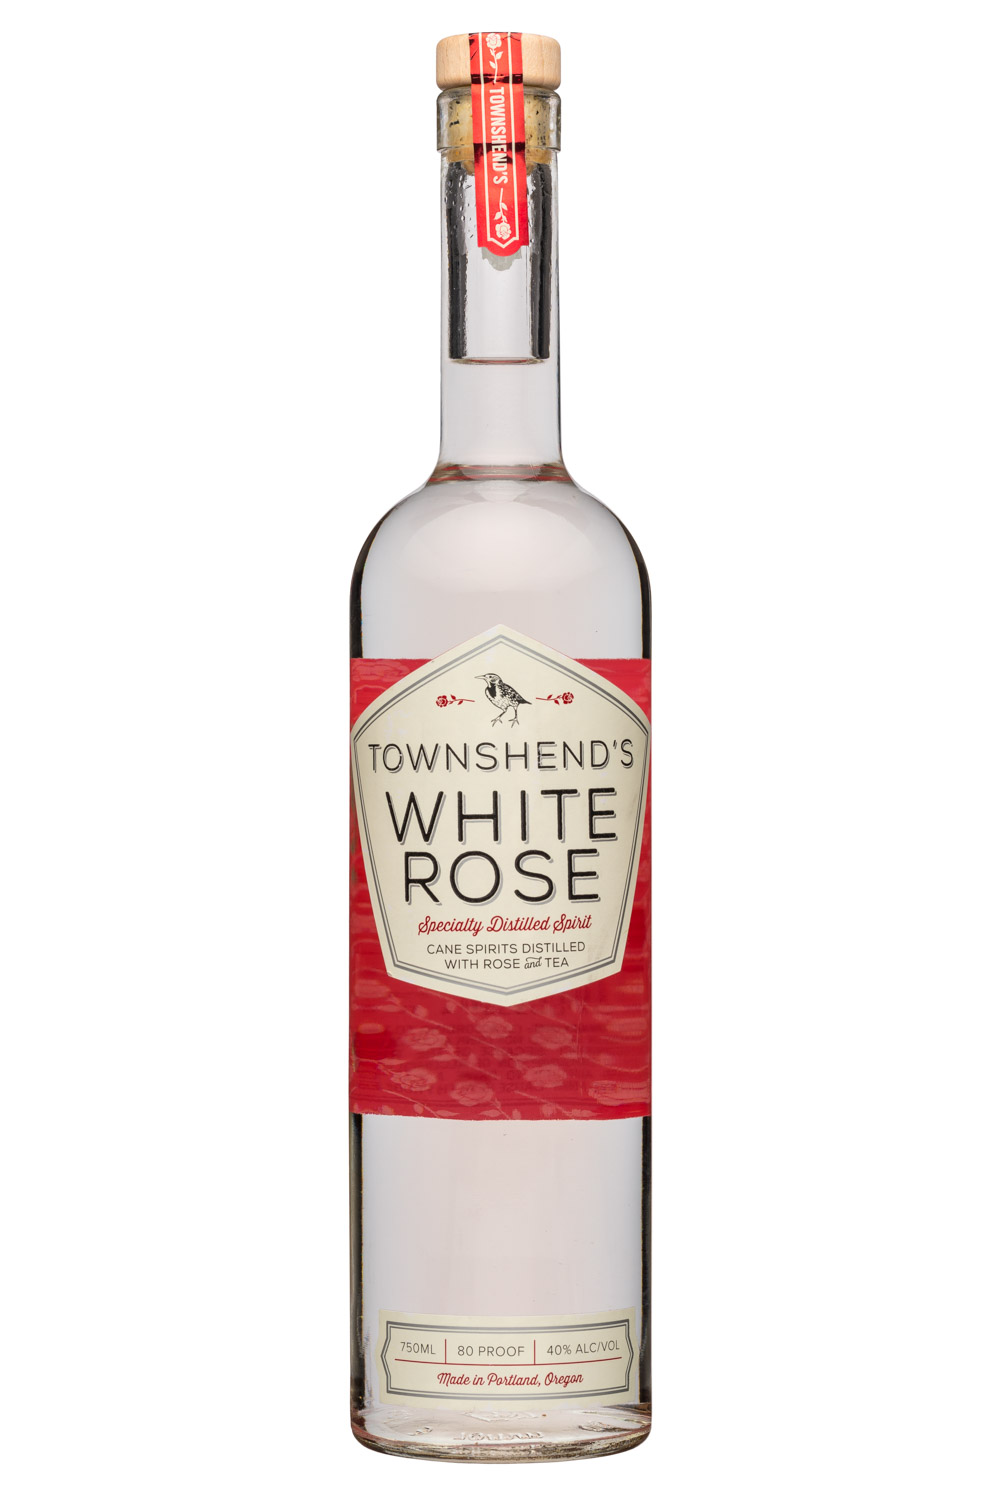 Townshend's White Rose